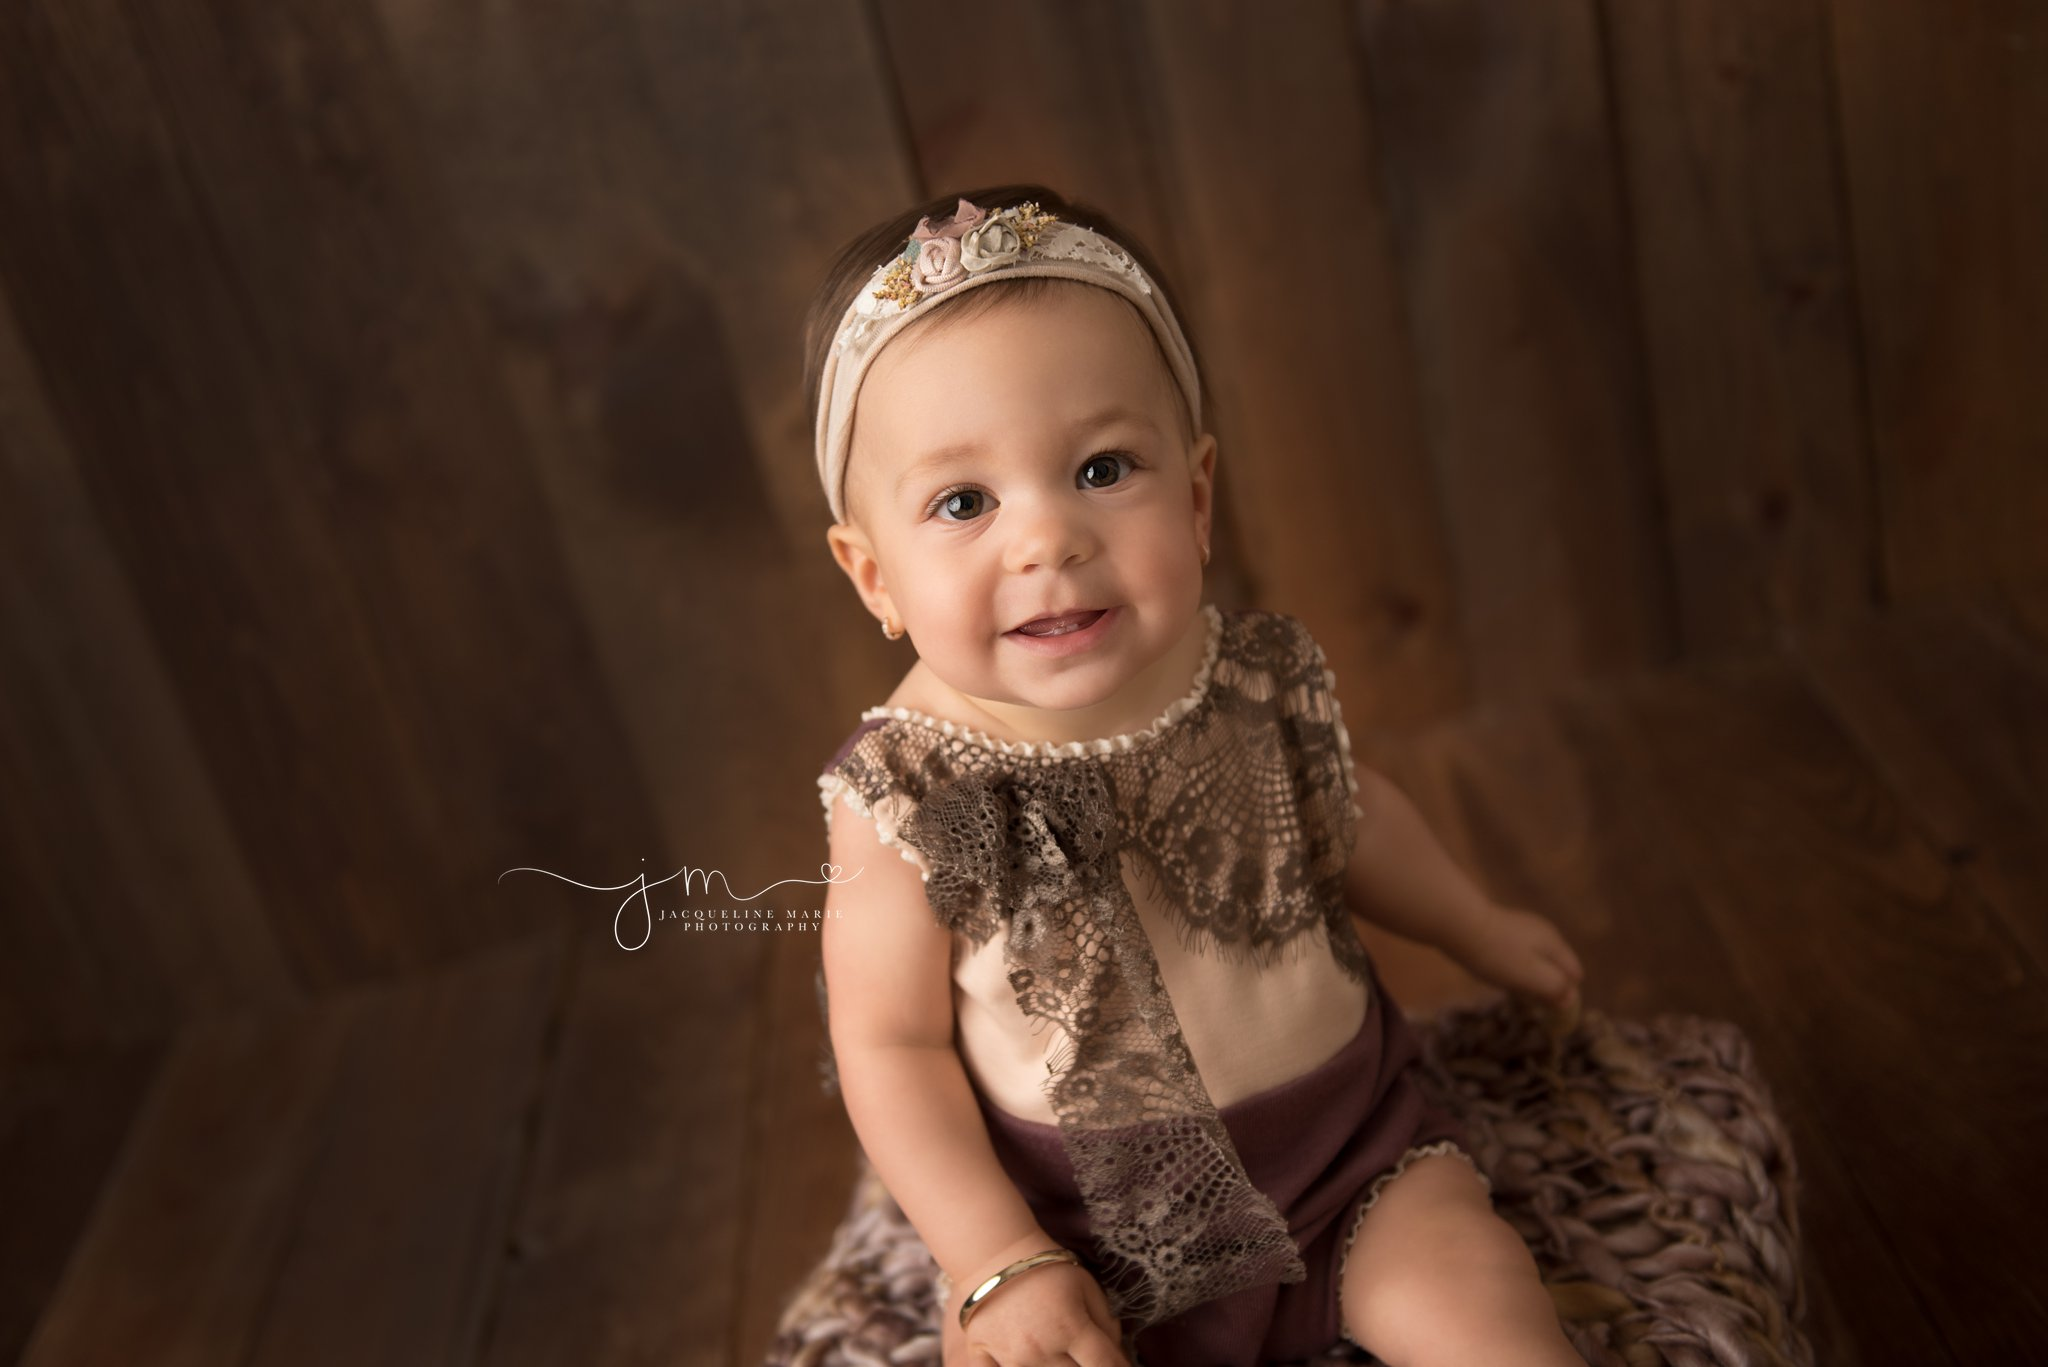 columbus ohio children photographer styles session with 1 year old girl wearing cream and plum romper and matching headband for first birthday portraits